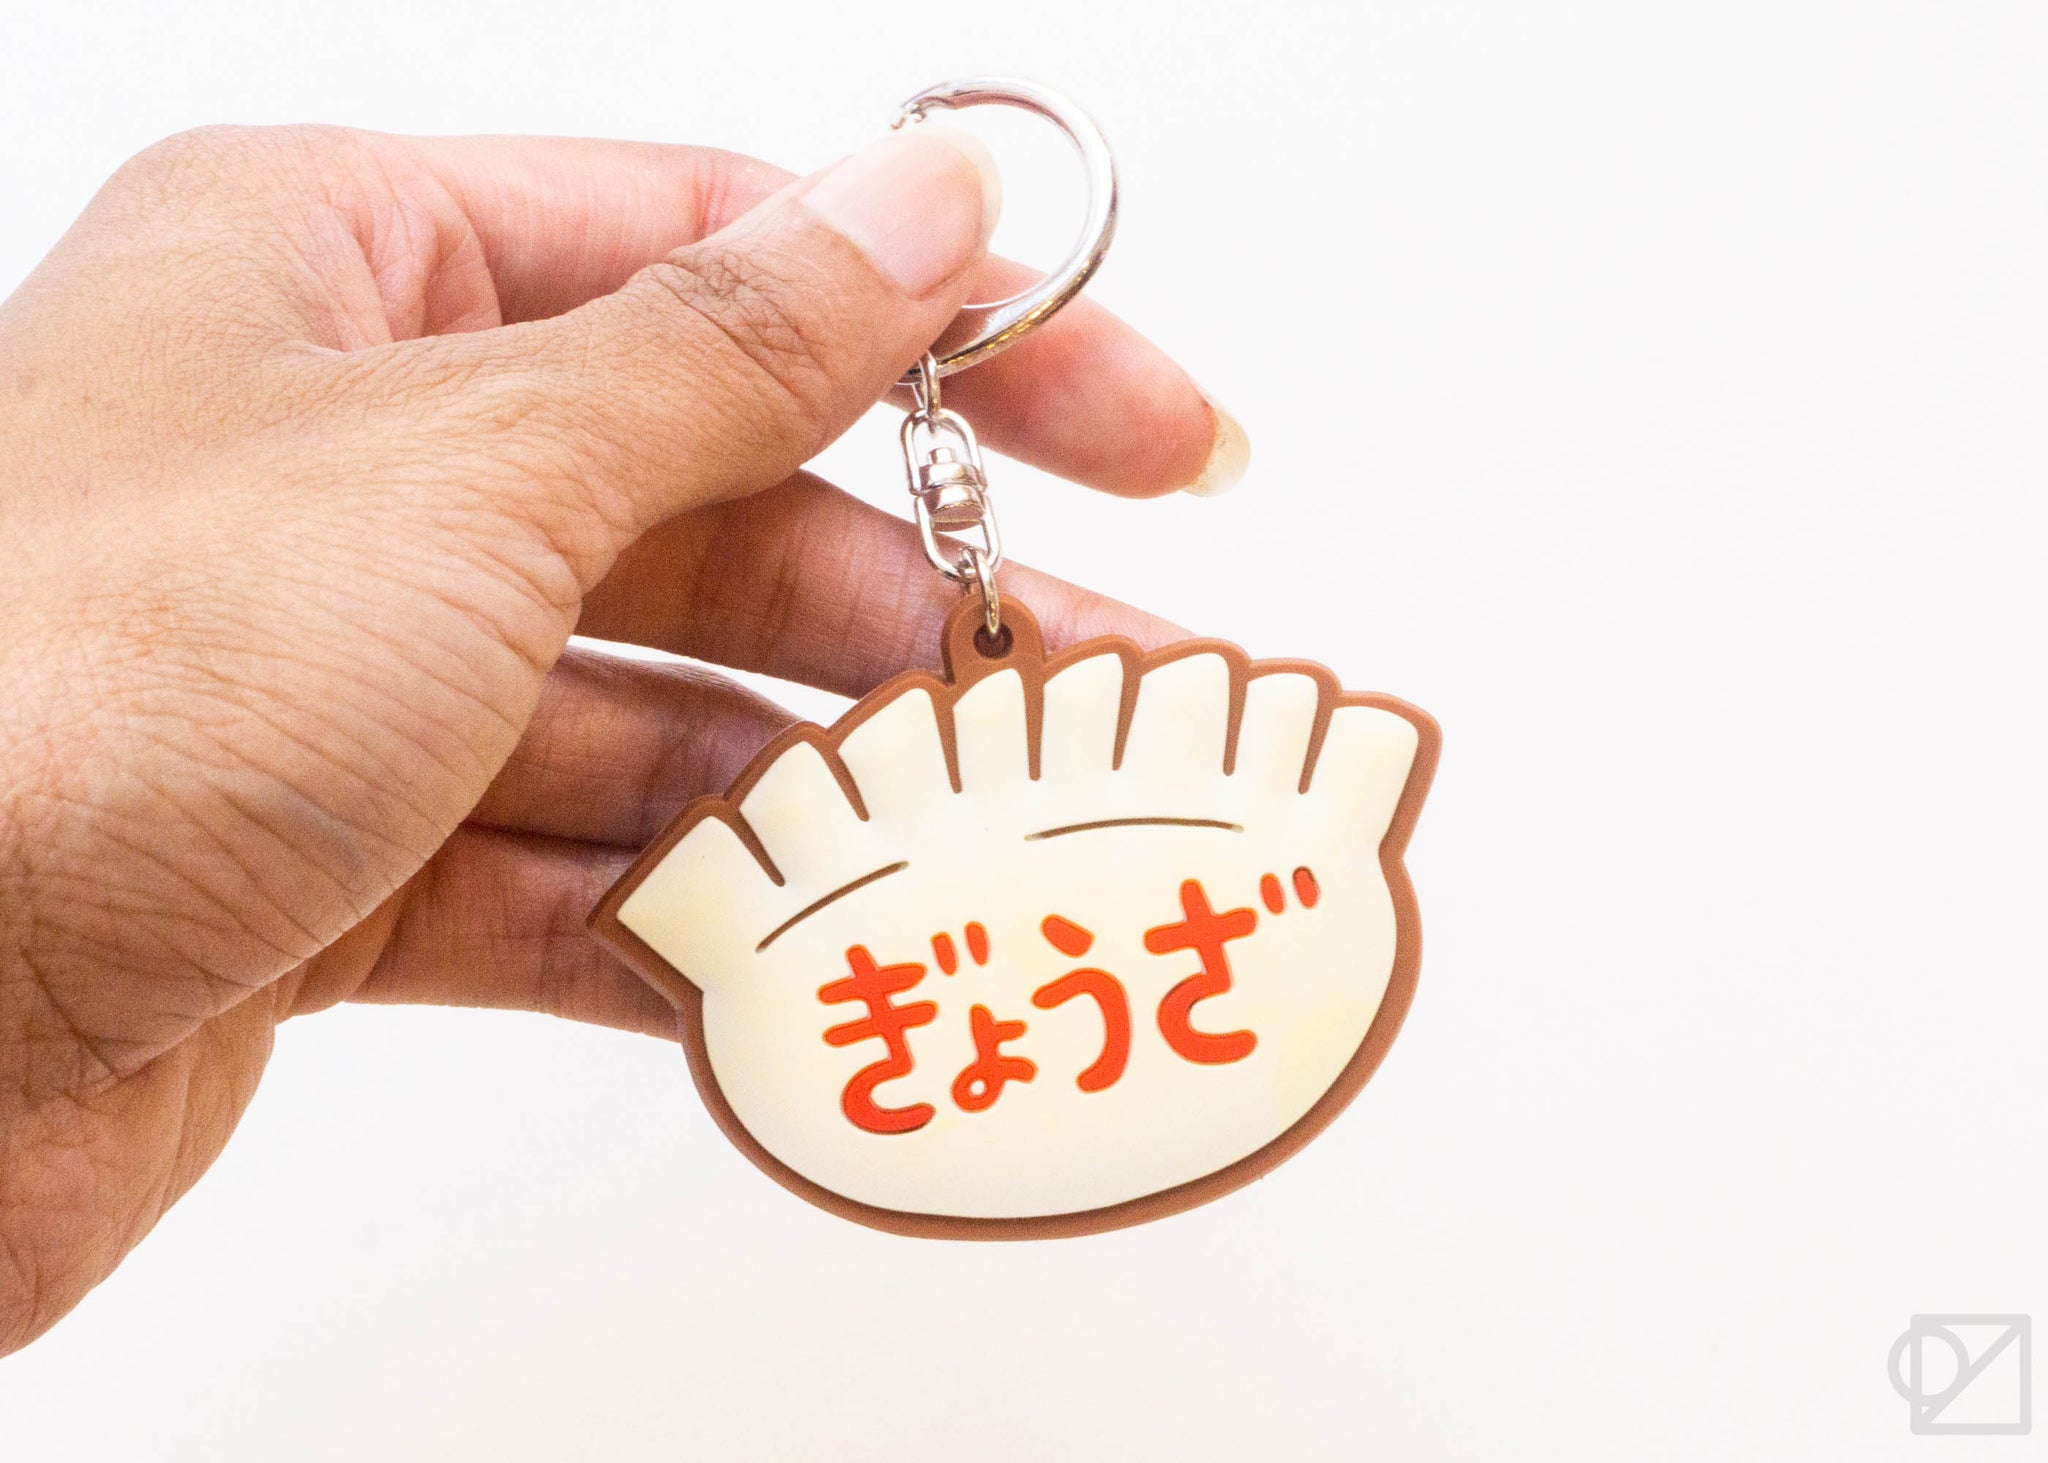 HIGHTIDE Retro Japanese Rubber Keychain